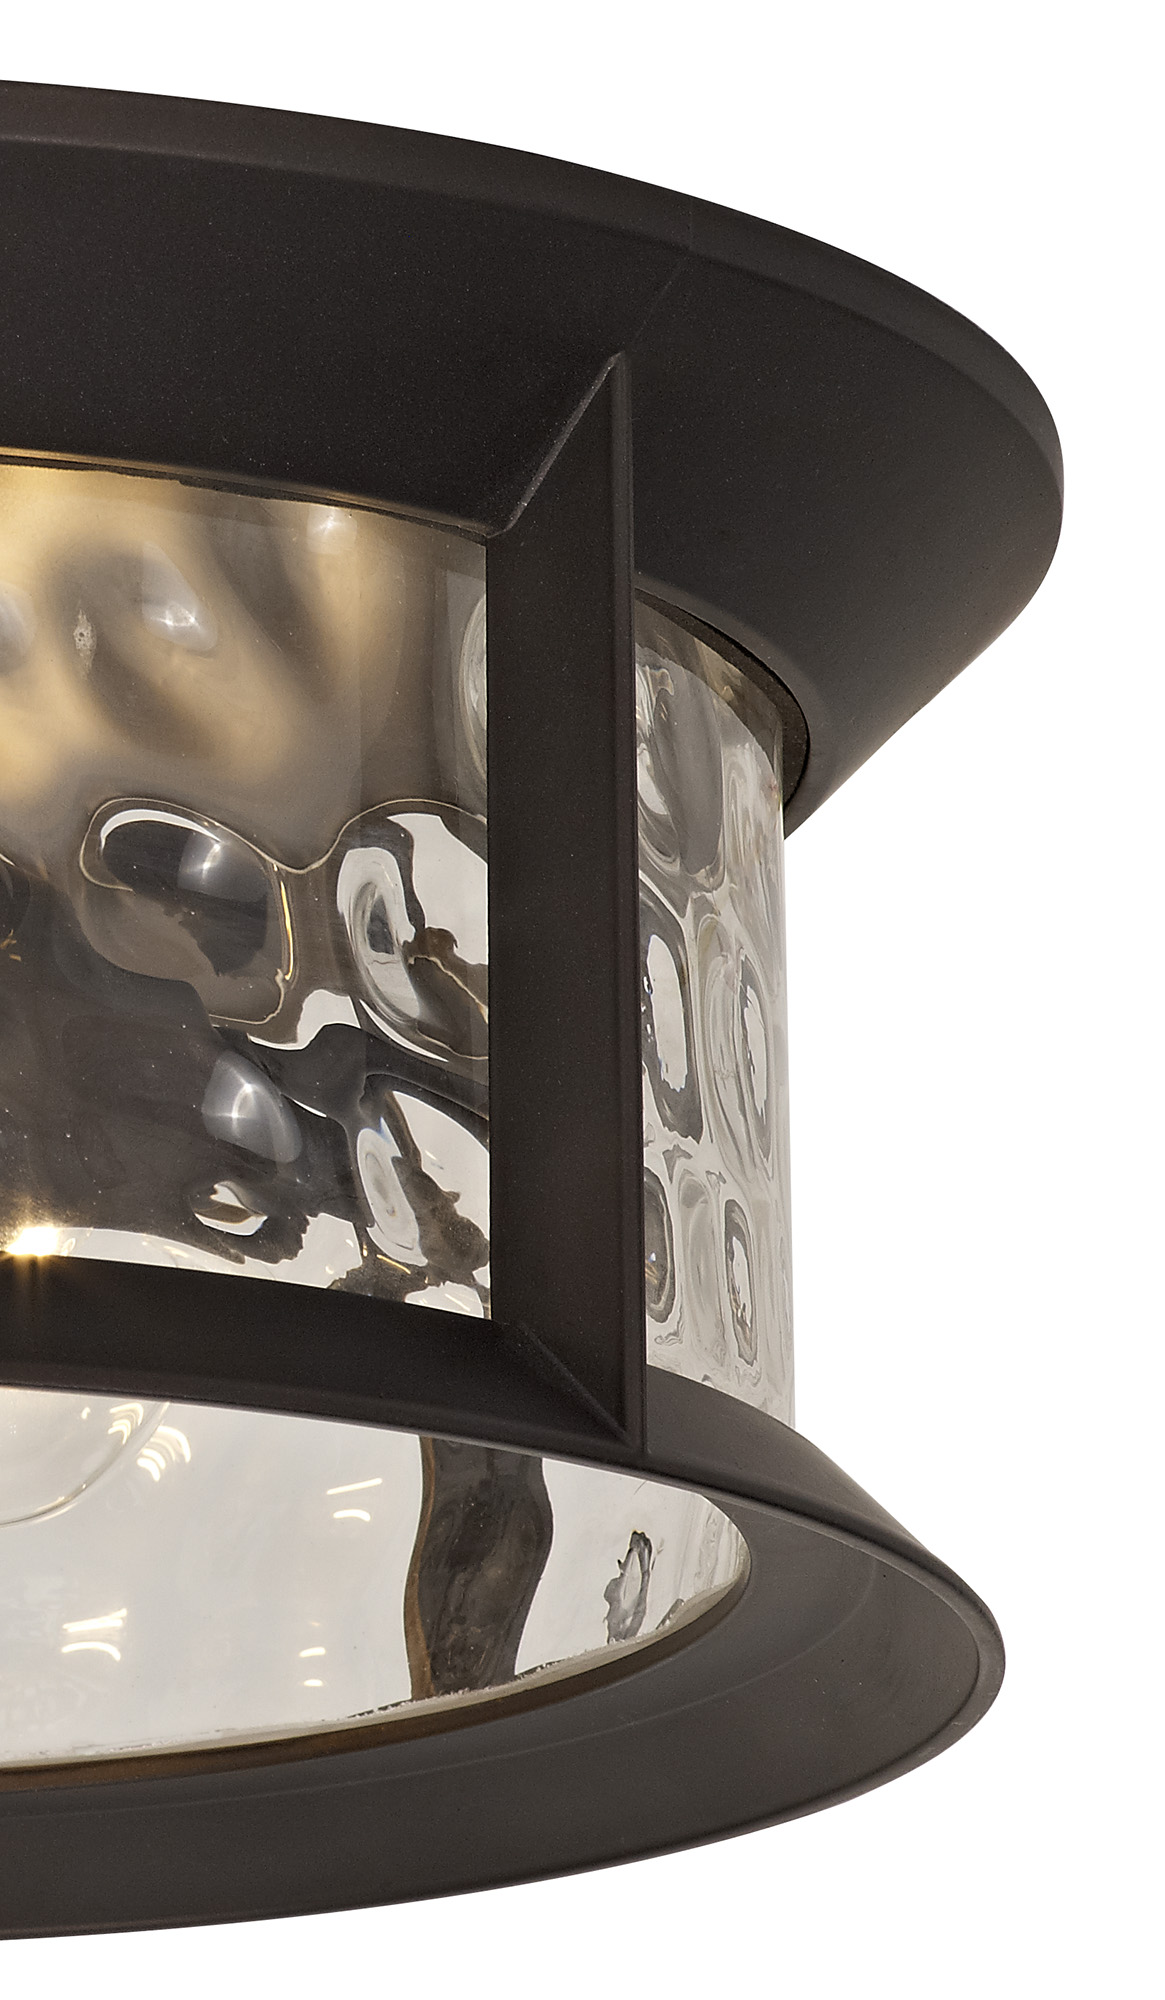 Flush Ceiling Lamp, 2 xE27, Antique Bronze/Clear Ripple Glass, IP54, 2yrs Warranty